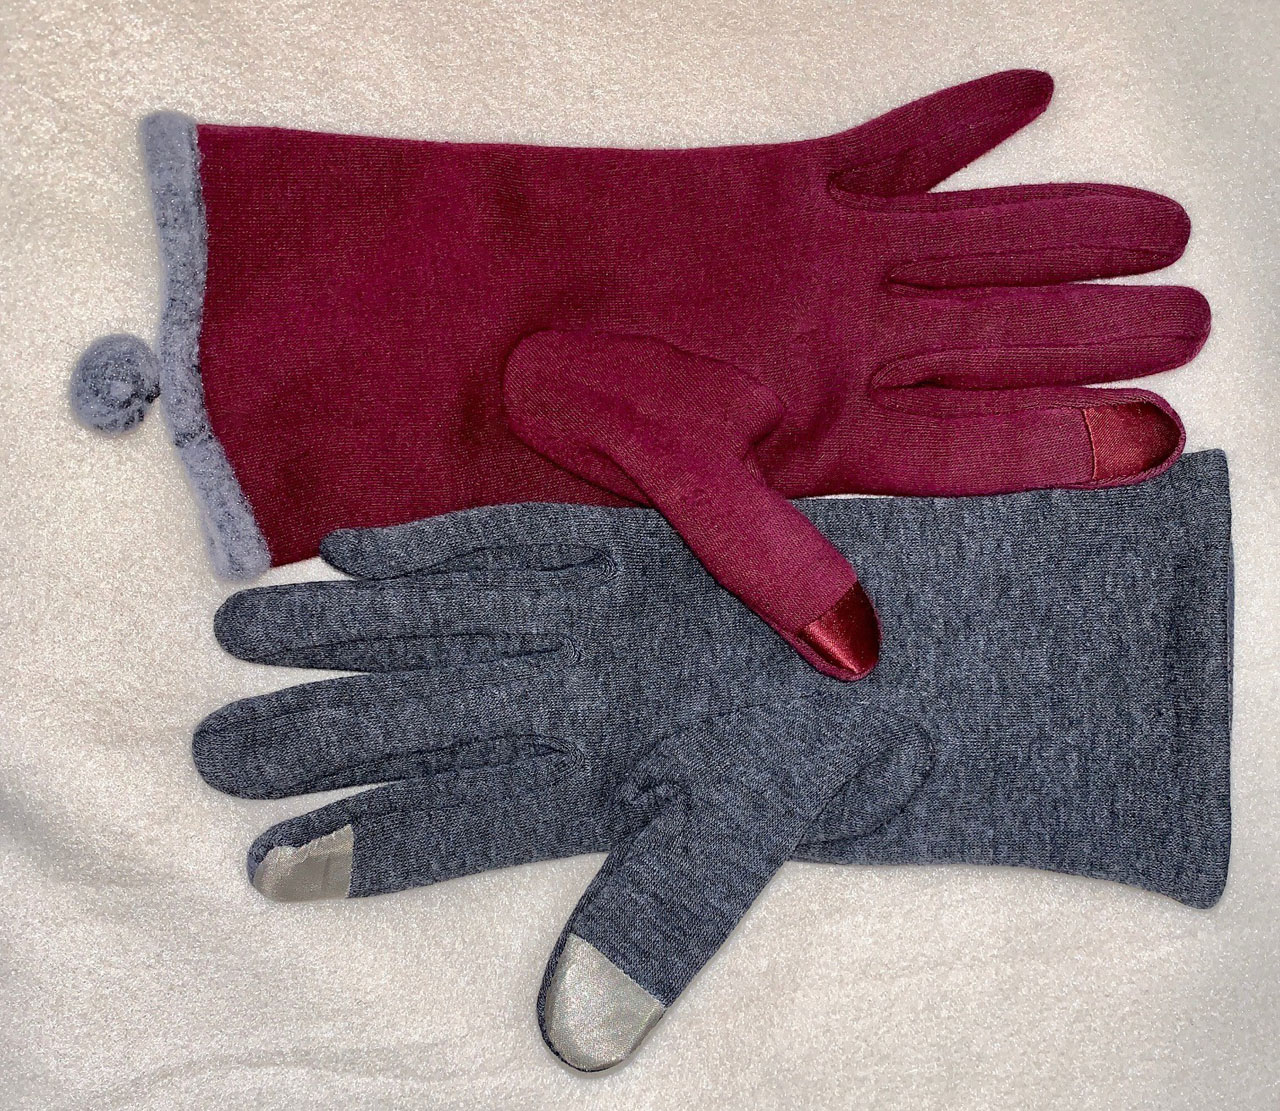 red and gray gloves